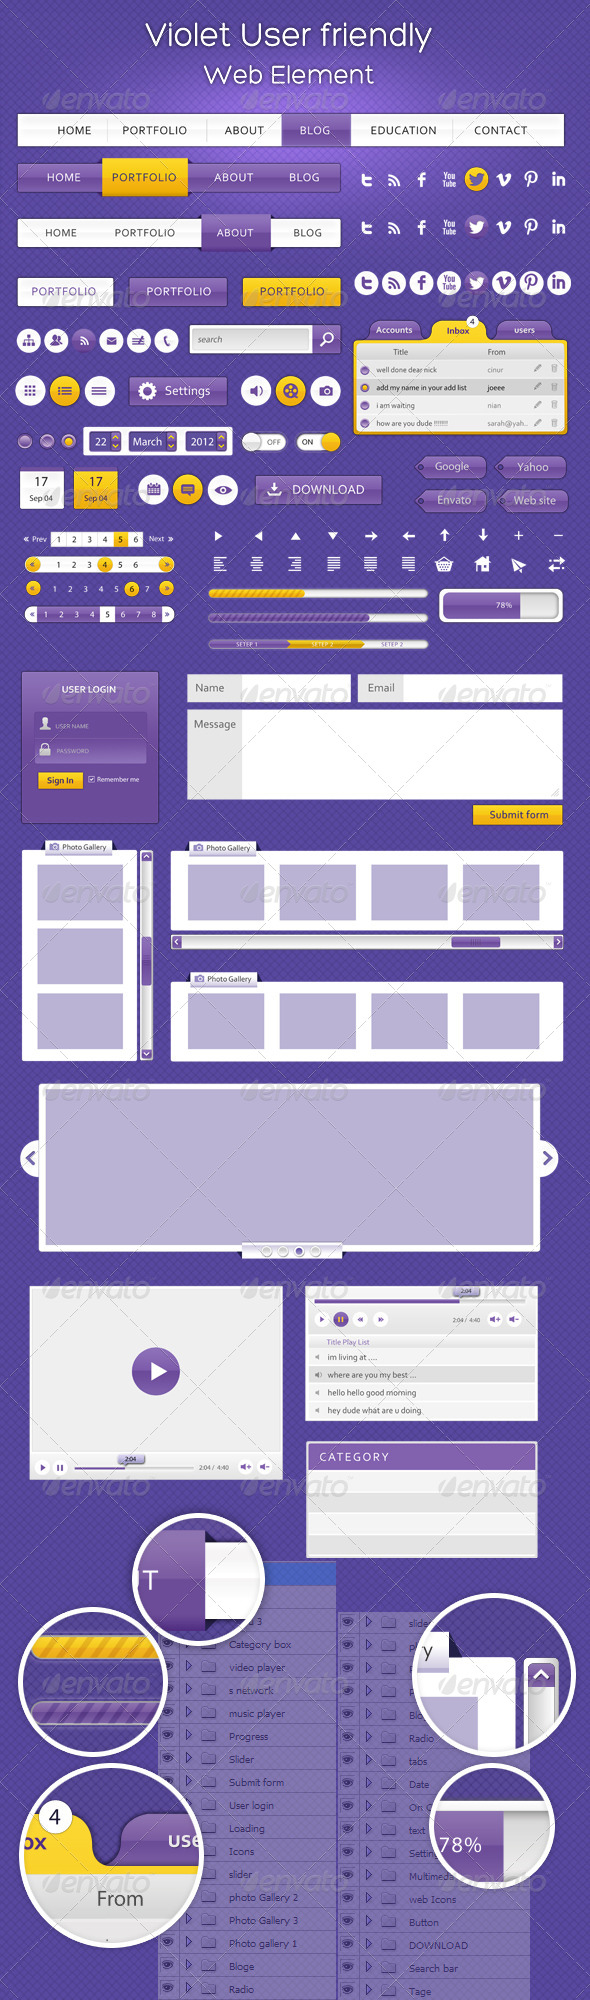 GraphicRiver Violet User Friendly Web Element 4564117